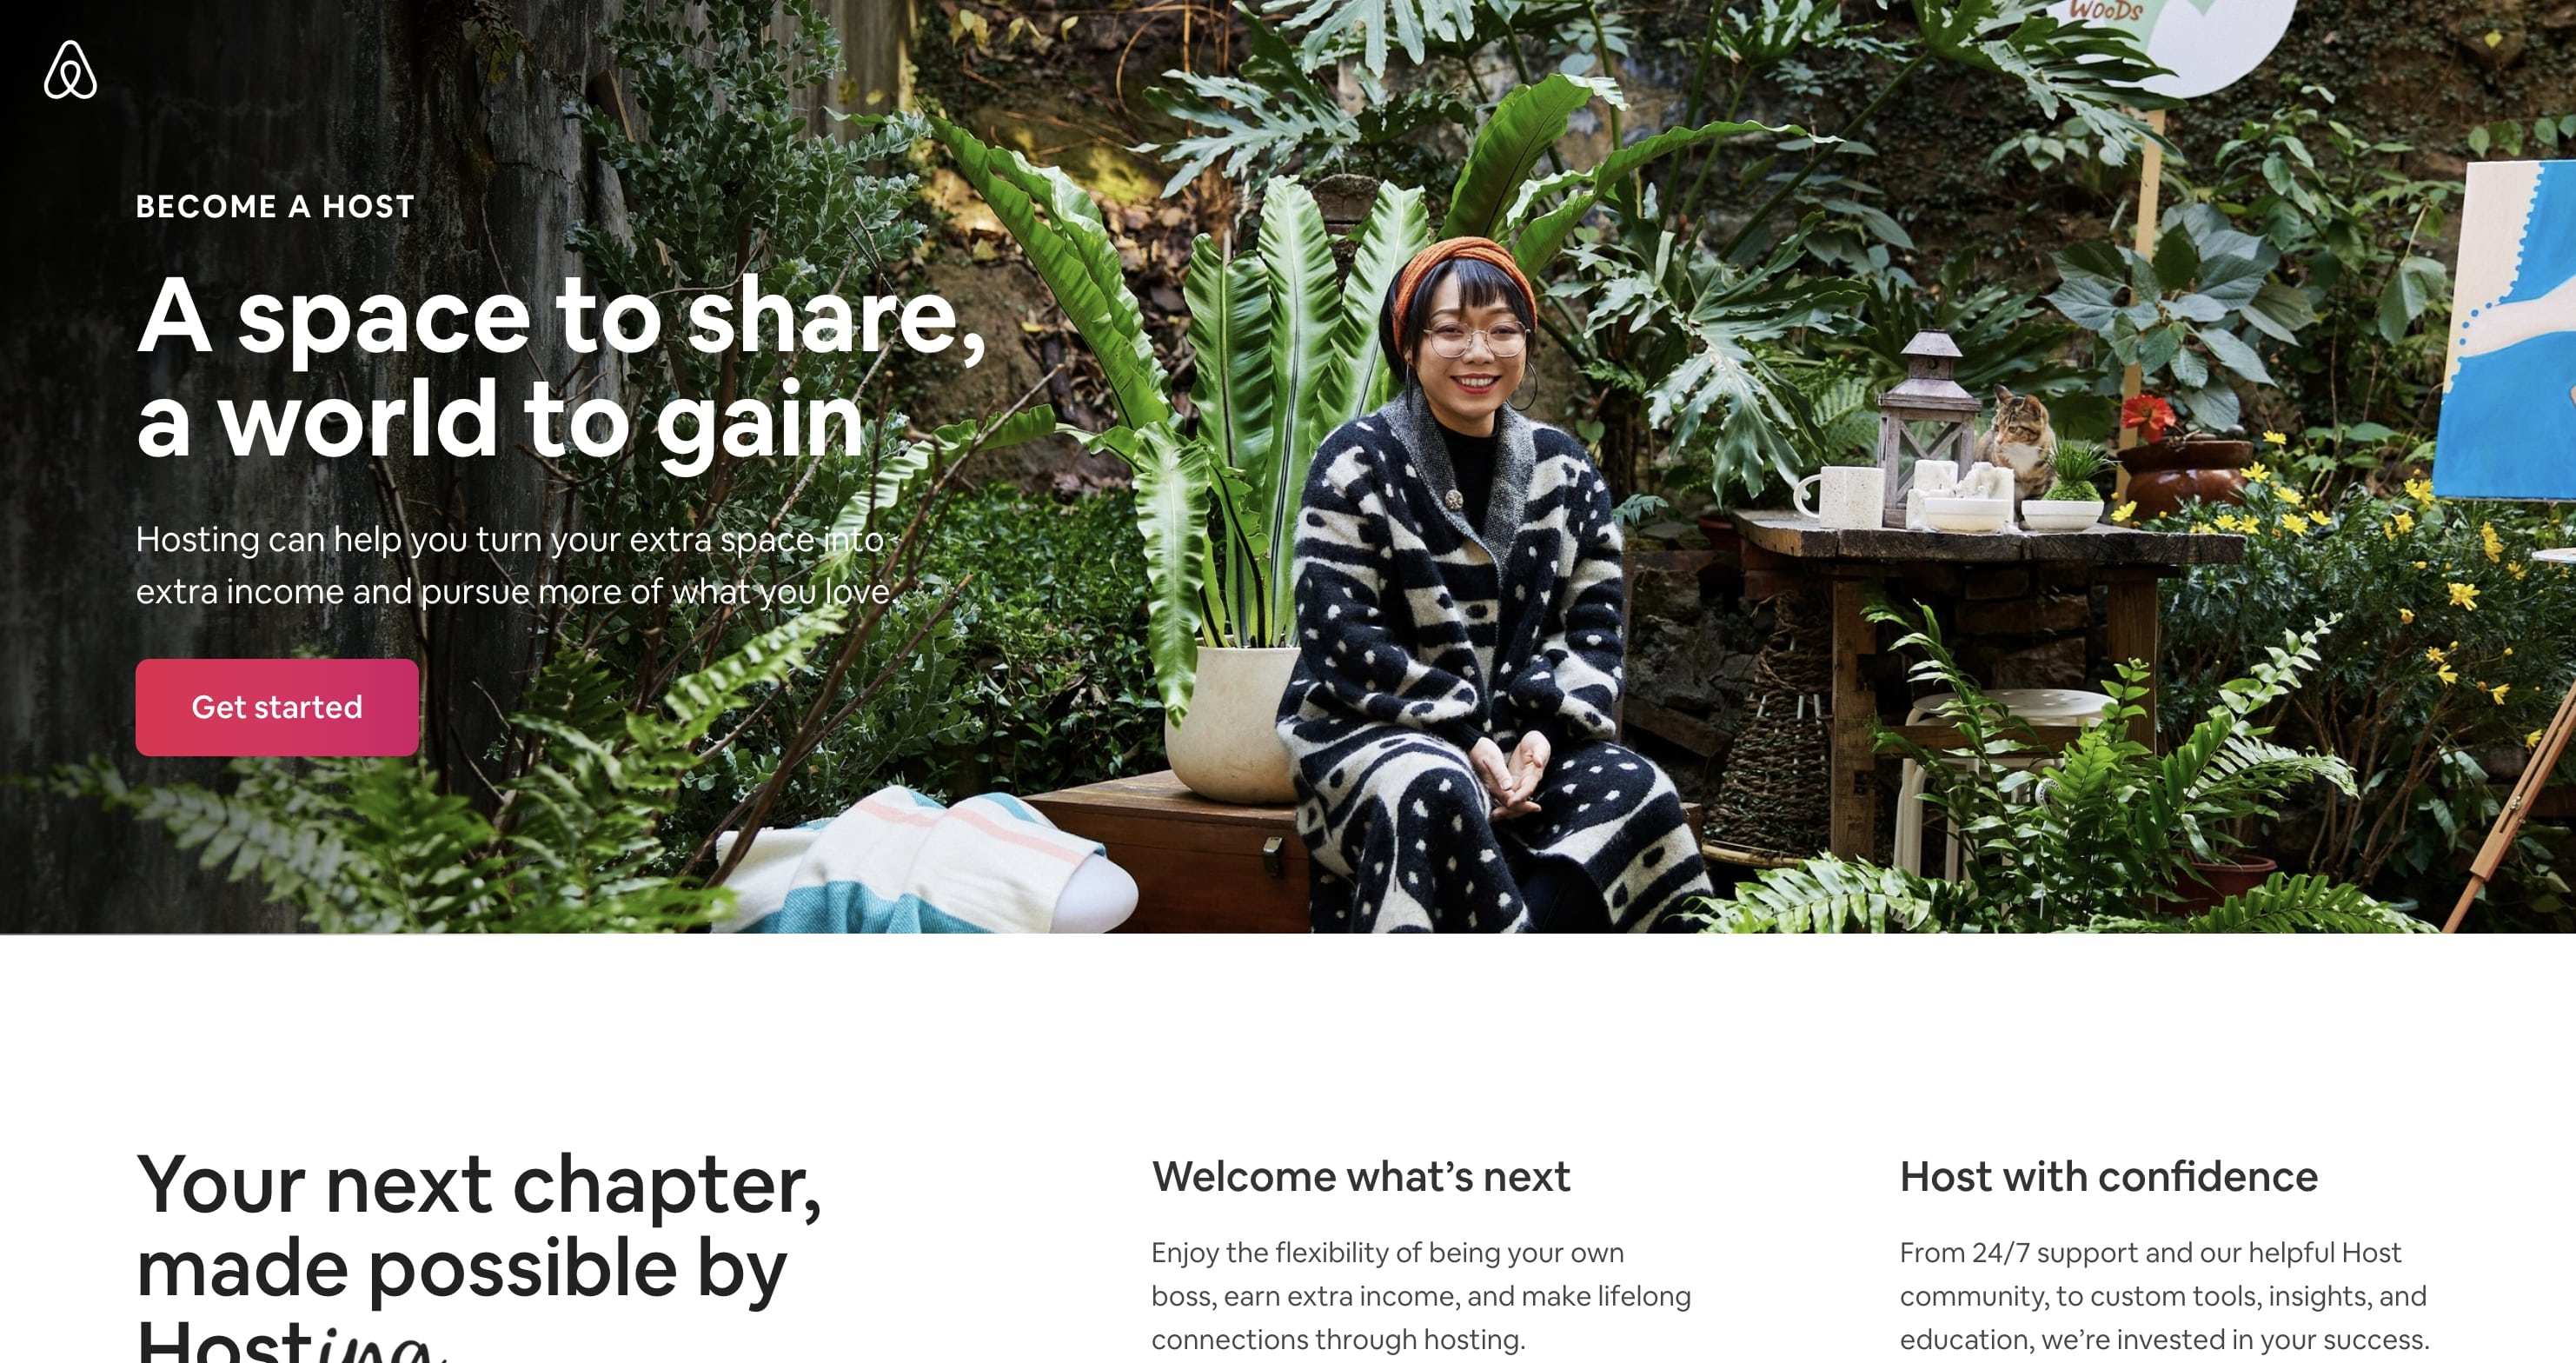 airbnb become a host page